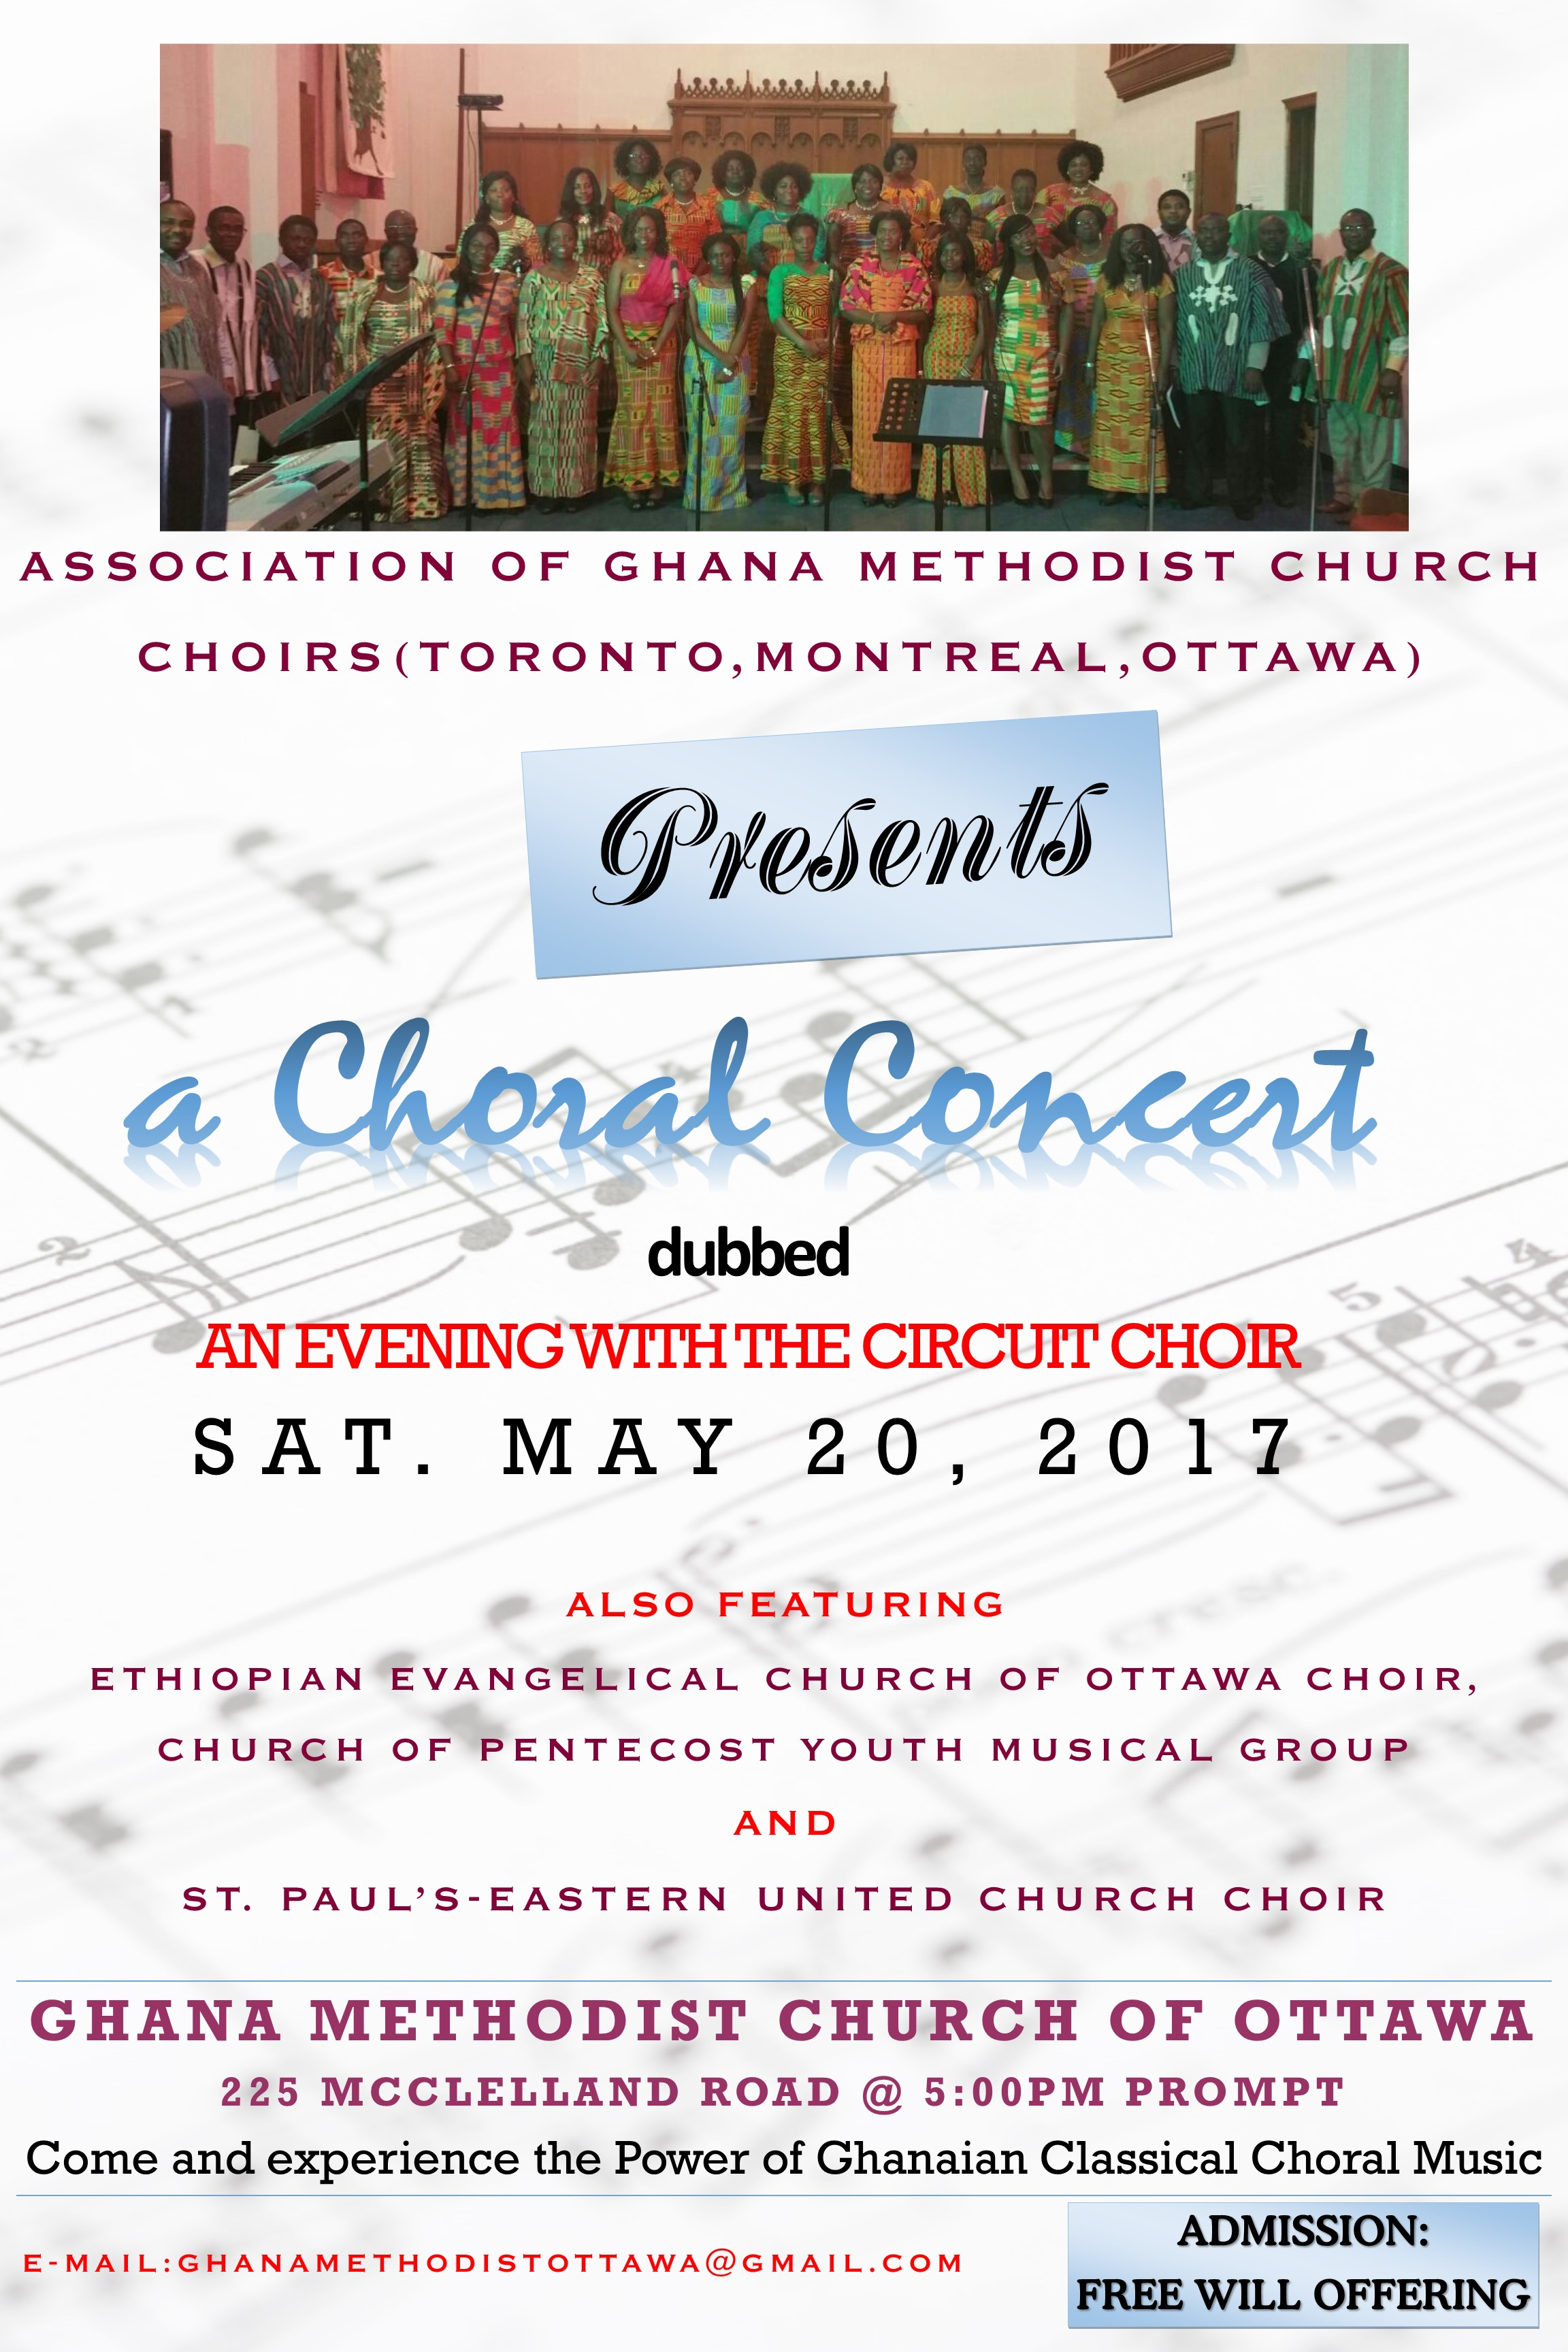 May 20, 2017 Poster for Choral Concert by Choirs from Toronto, Montreal and Ottawa